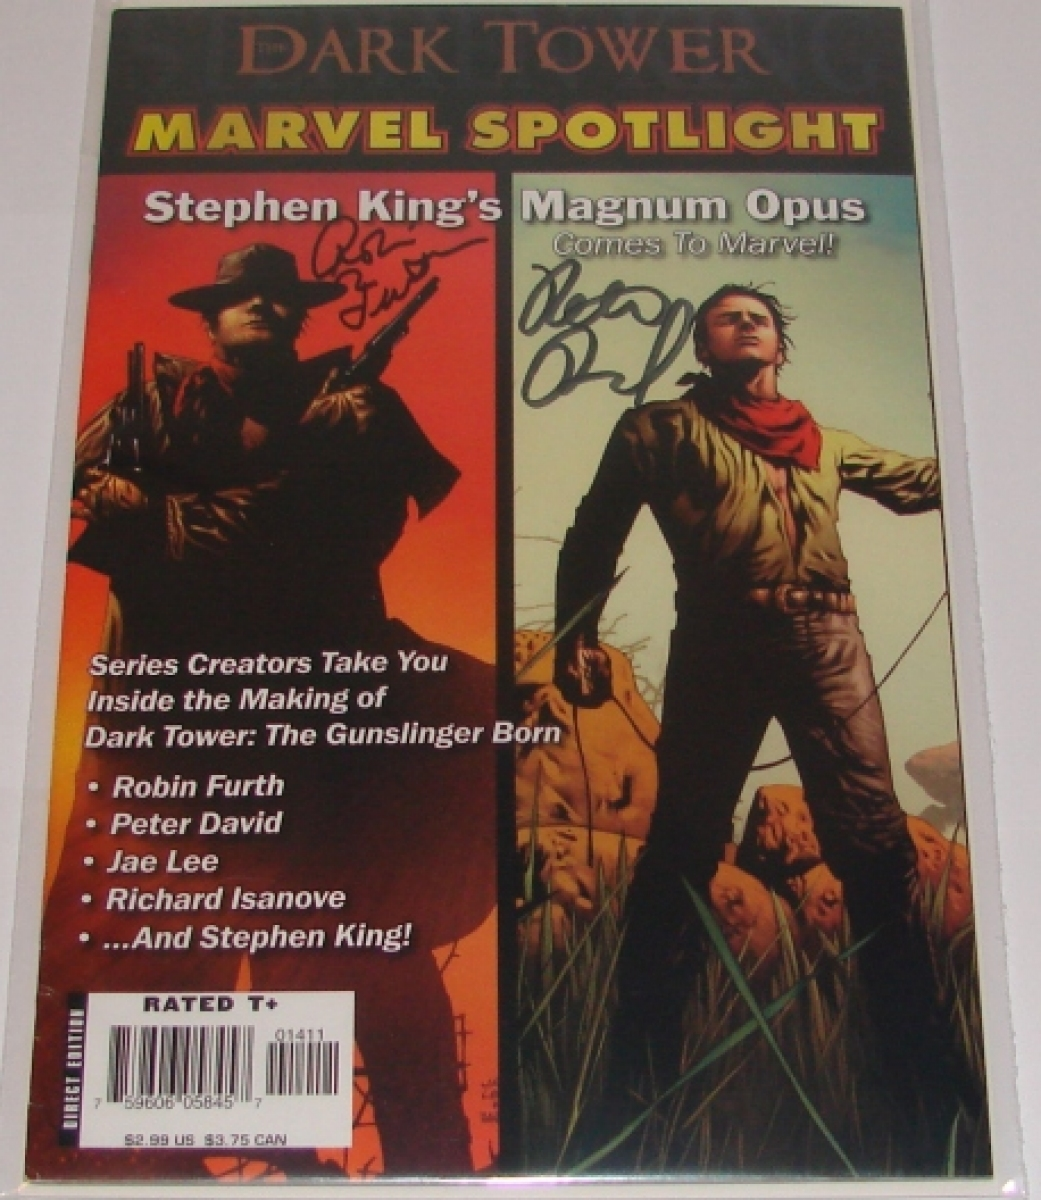 """The Dark Tower: Marvel Spotlight"" - autografy Robin Furth i Petera Davida - obrazek"